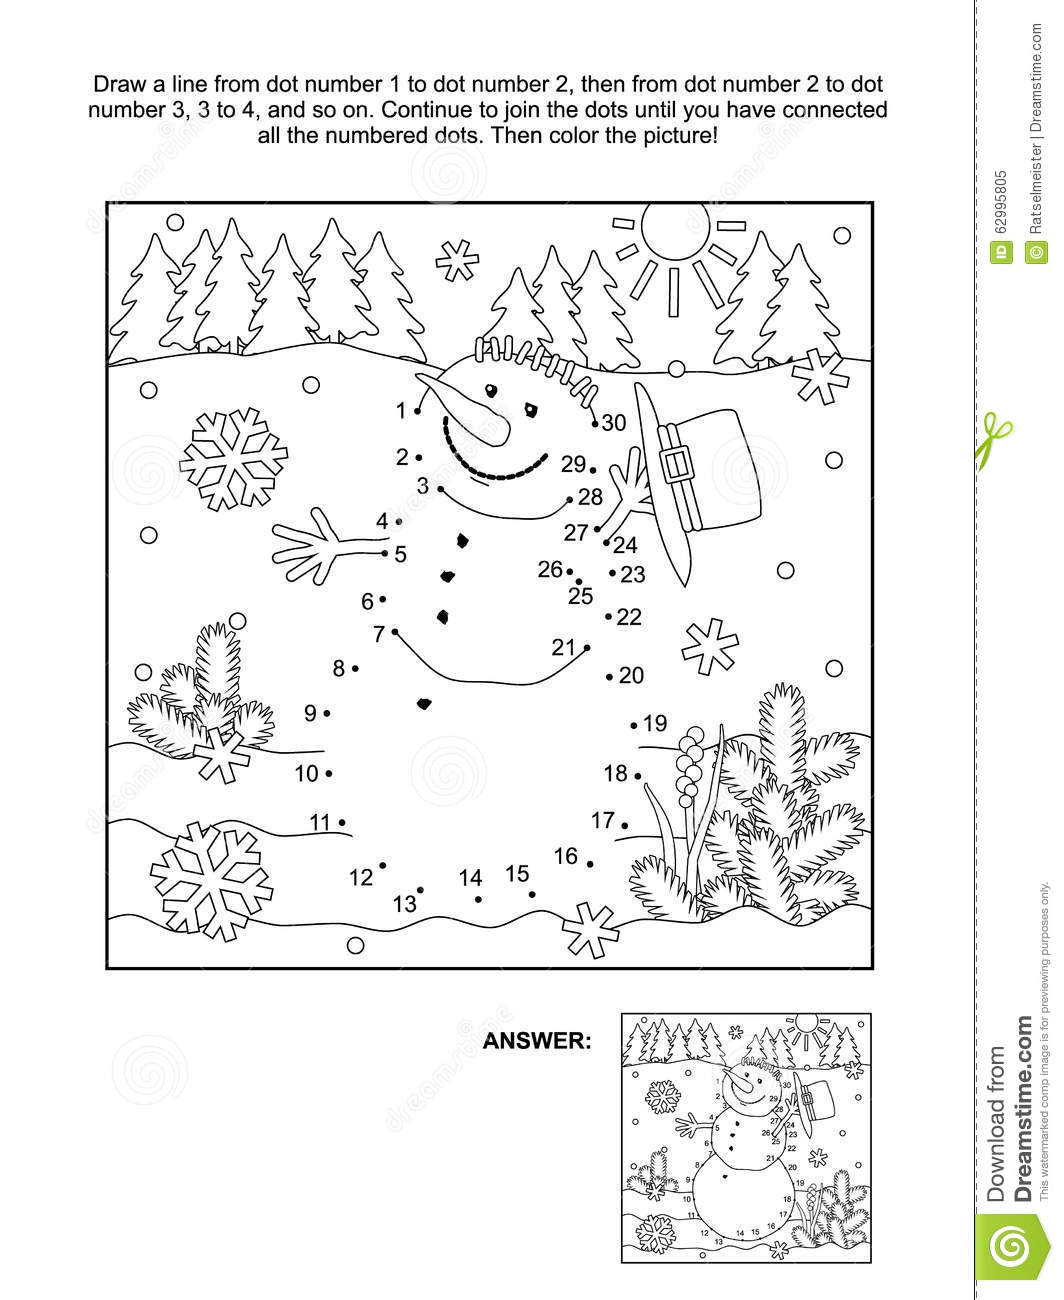 dot-to-dot-coloring-page-snowman-winter-new-year-christmas-themed-connect-dots-picture-puzzle-answer-included-n-62995805